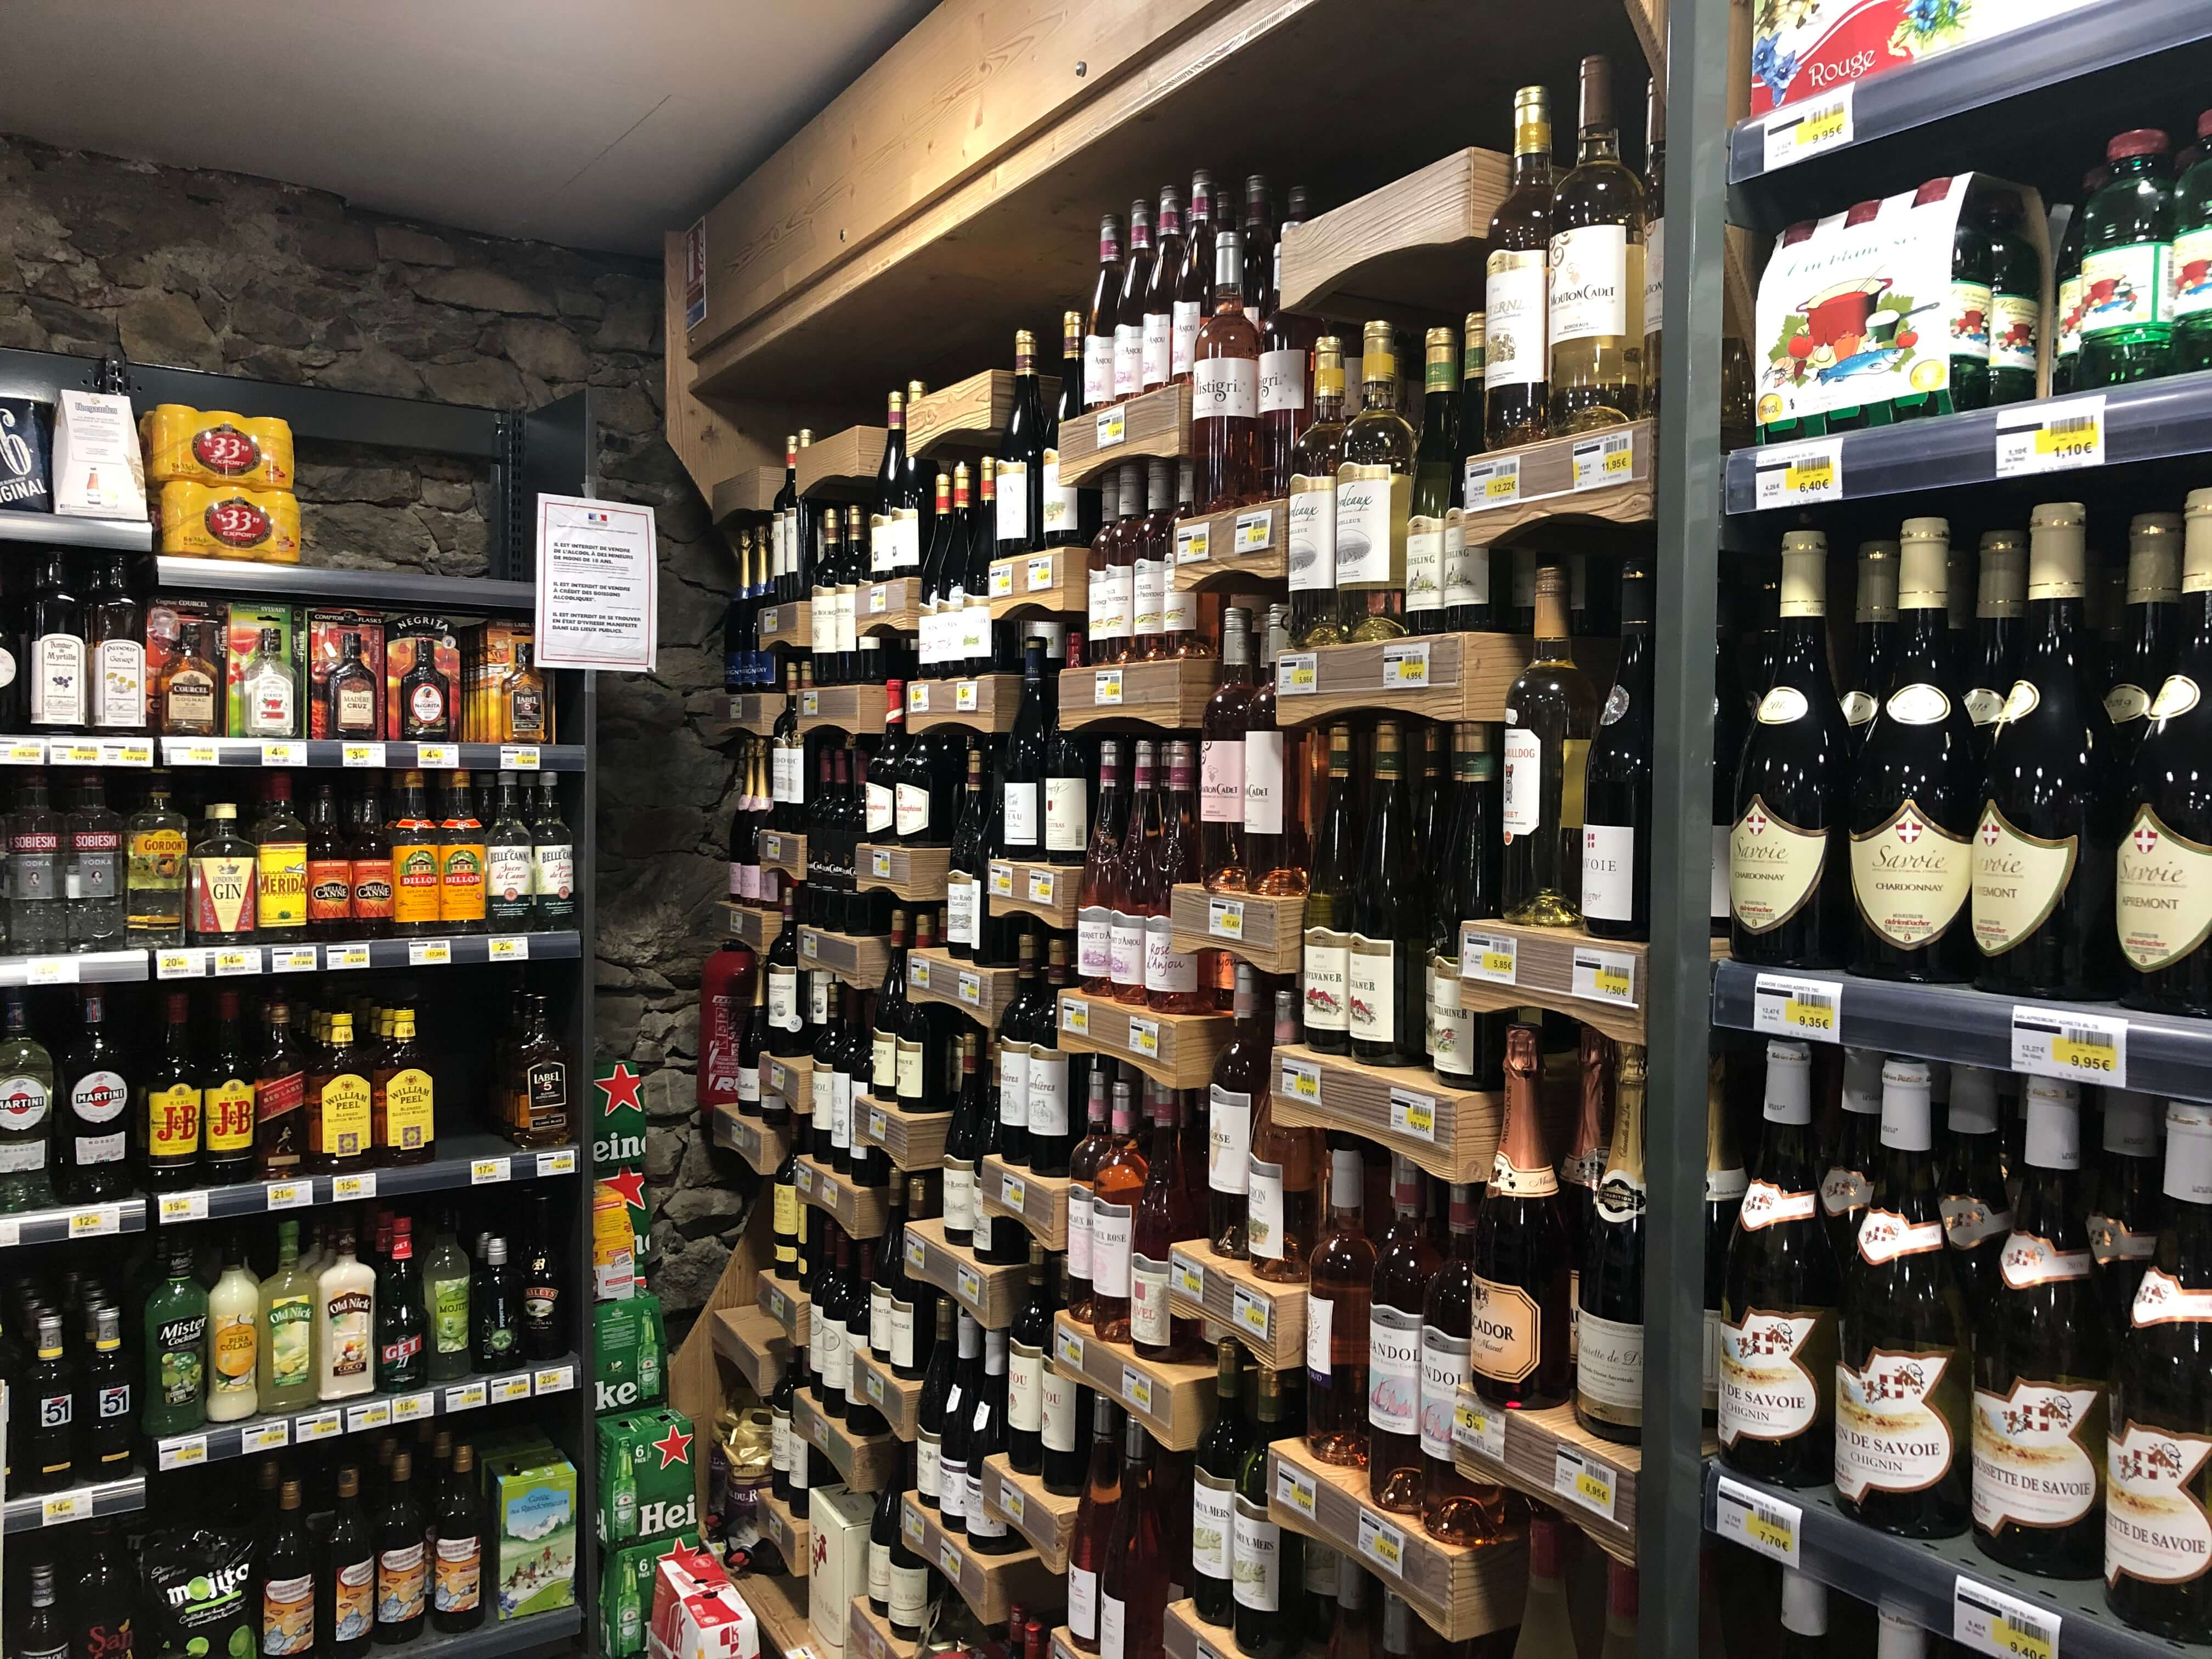 Sherpa supermarket Puy Saint Vincent 1400 wine cellar and alcohol